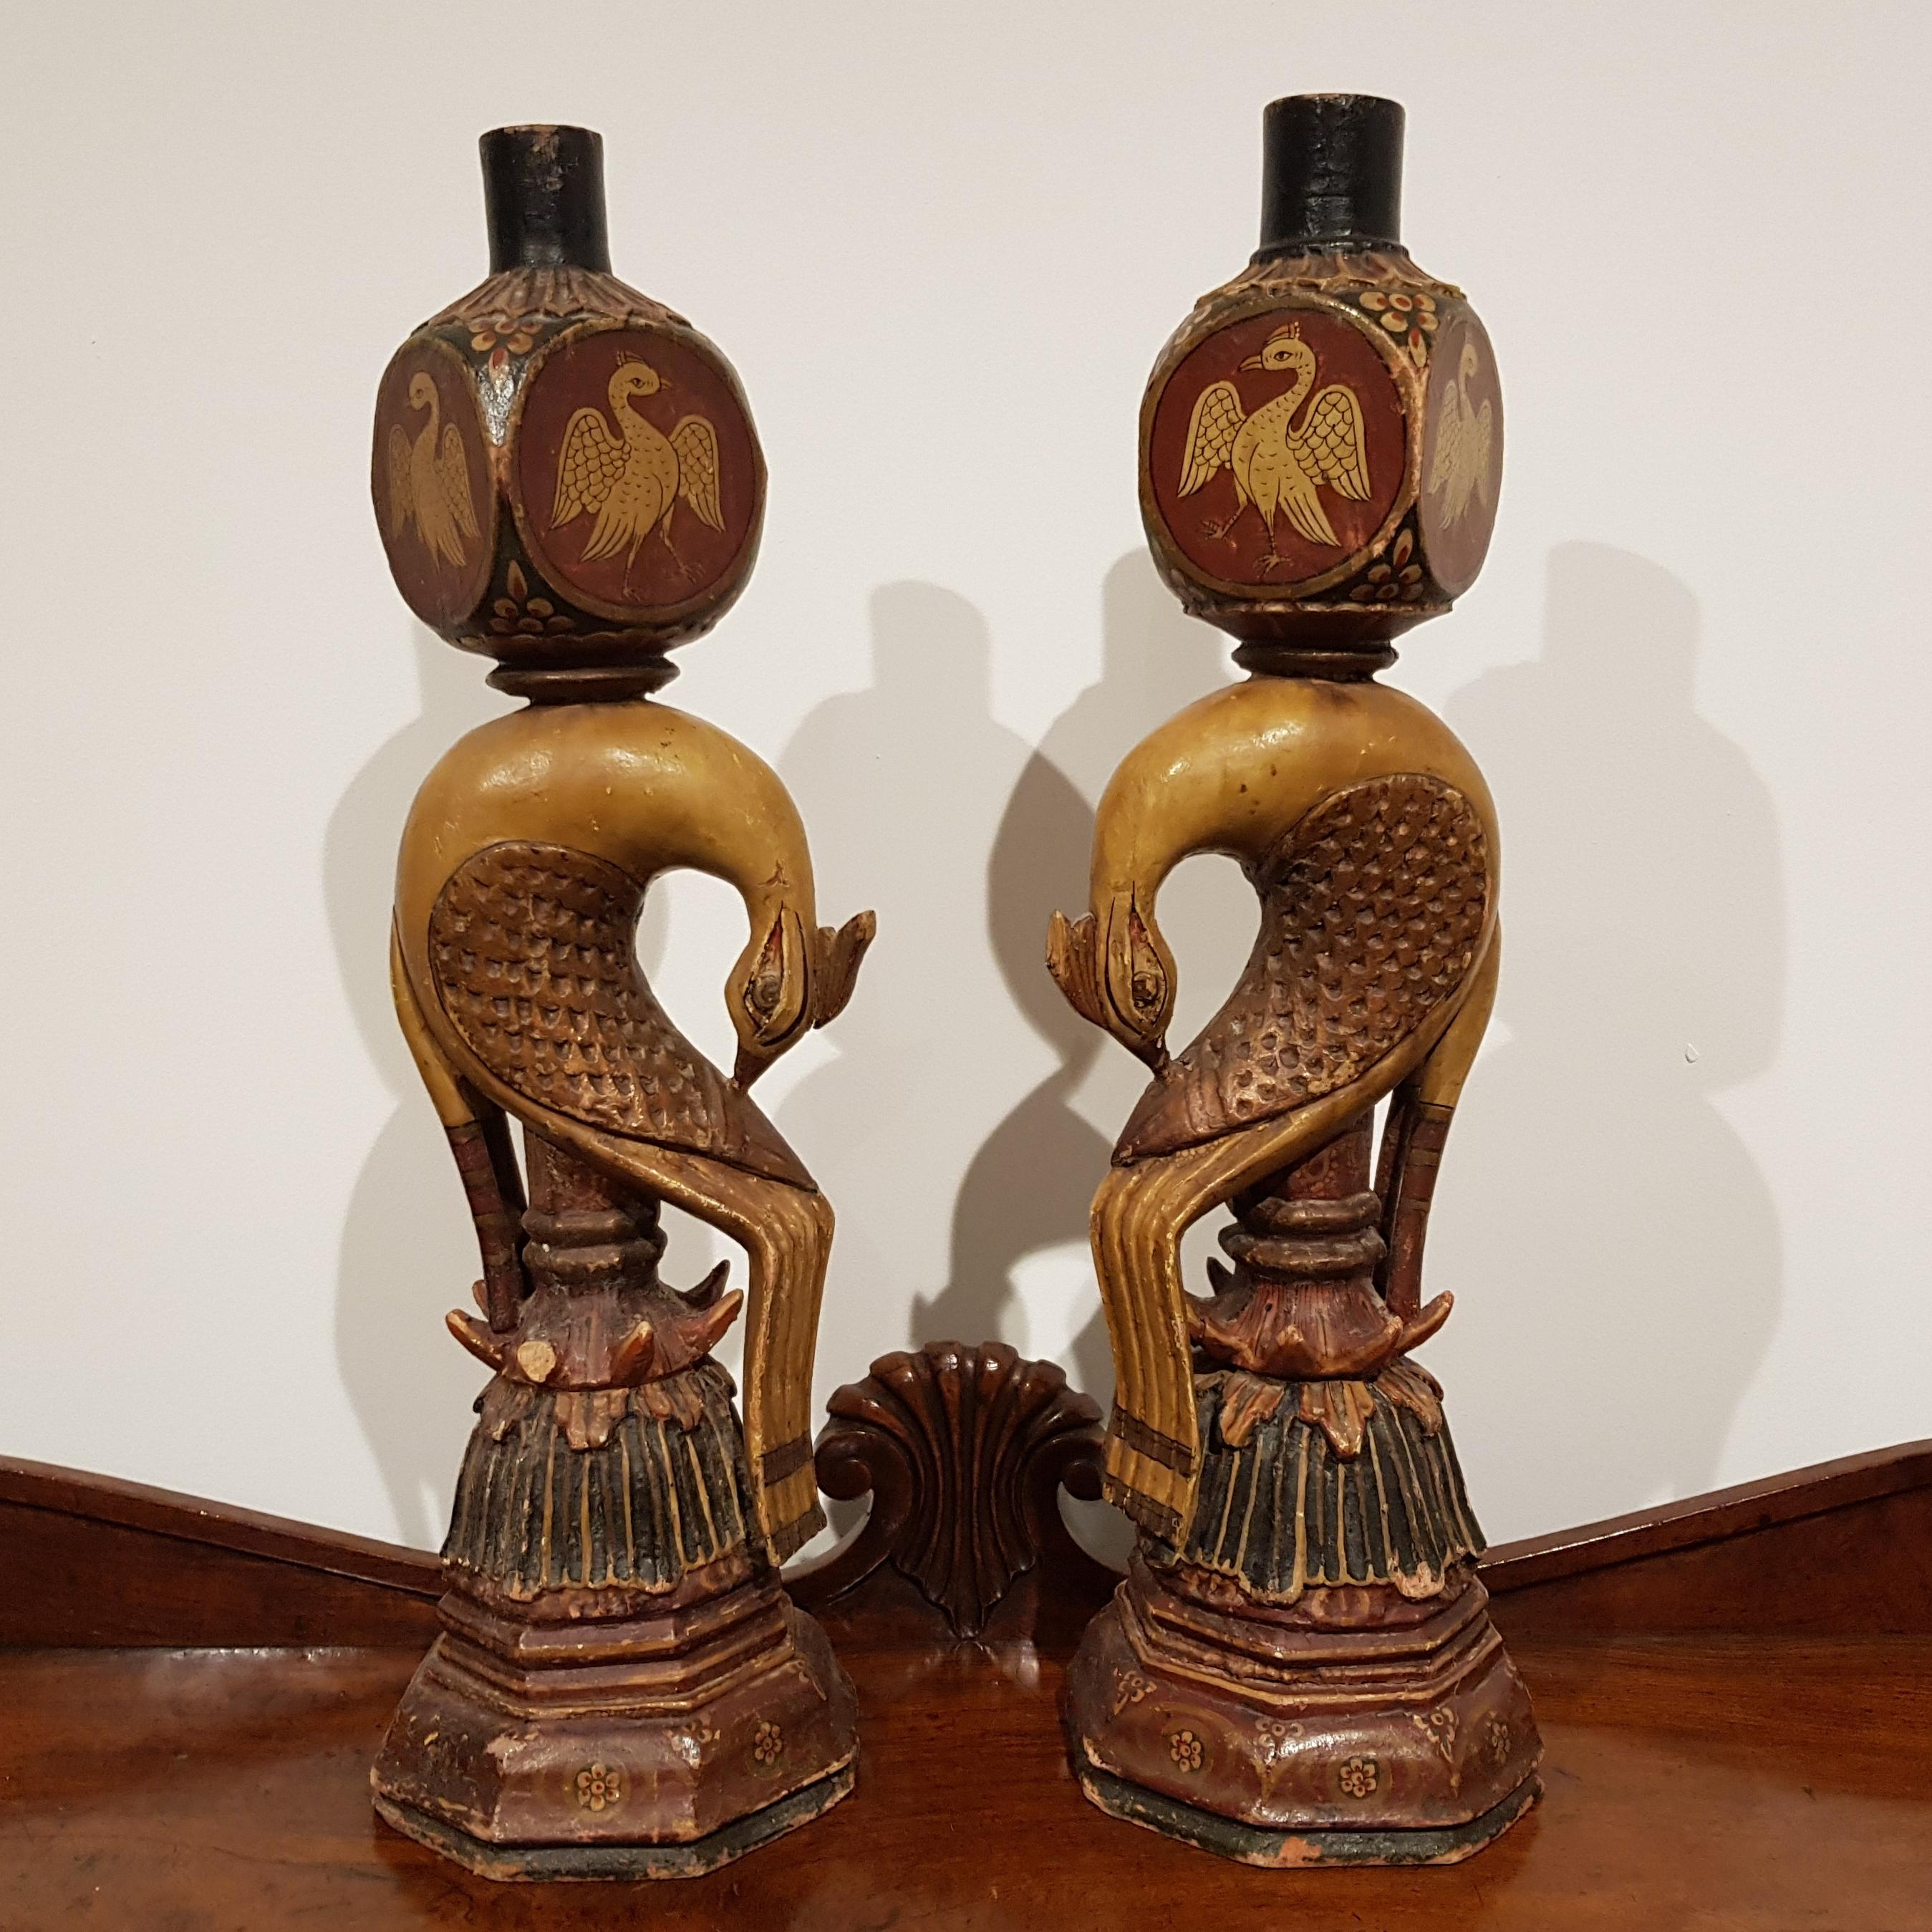 18th Century Indian Lamps